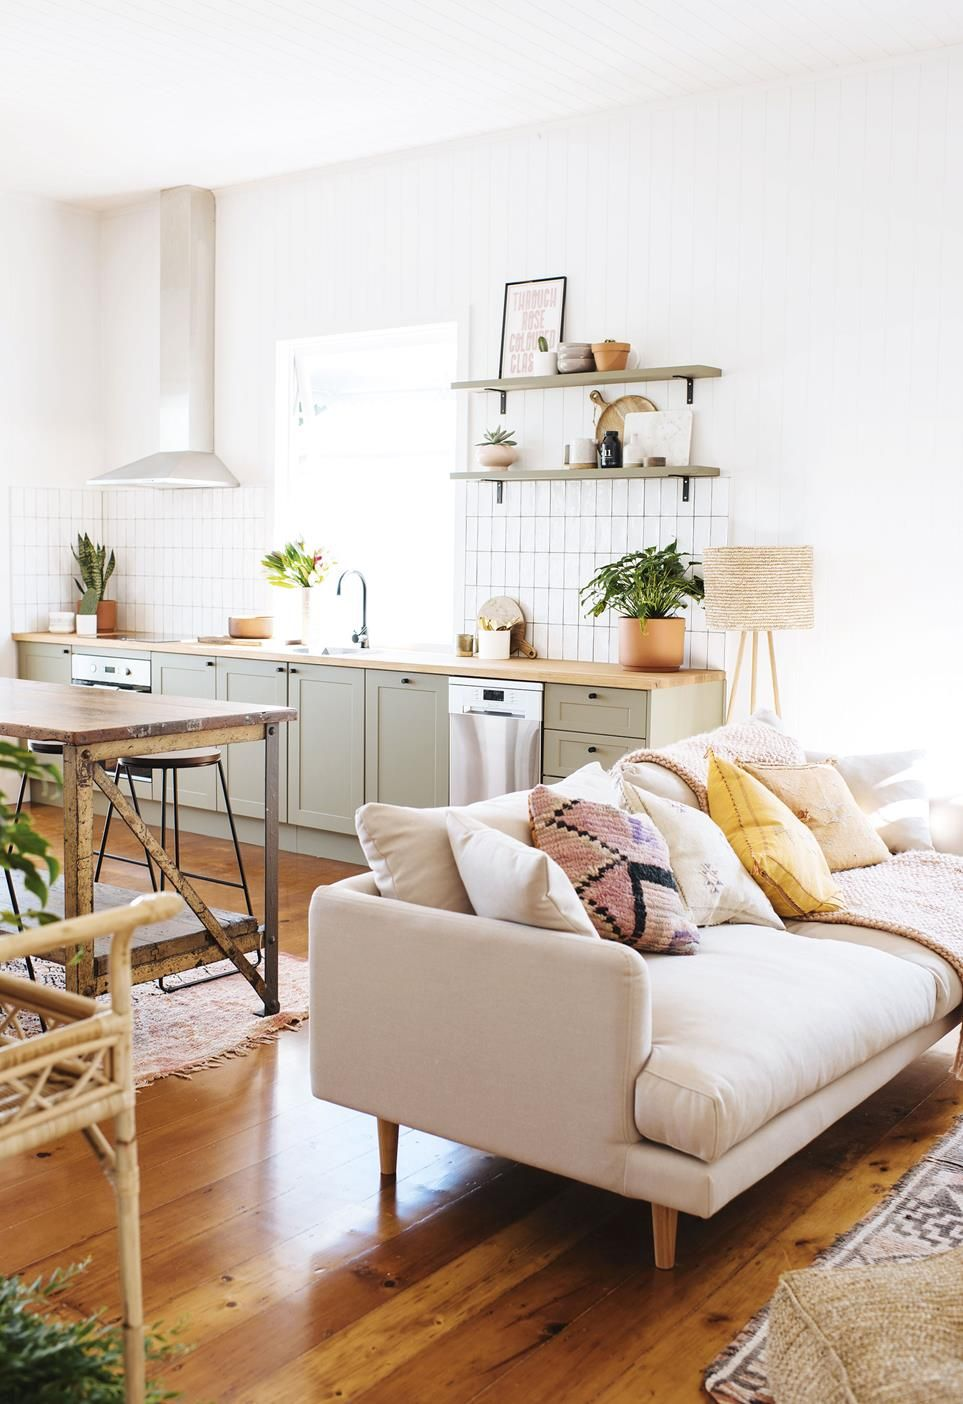 Geneva vanderzeil of stylish diy website  pair  spare teams up with her designer partner to revive brisbane fixer upper also was revived by and in rh pinterest